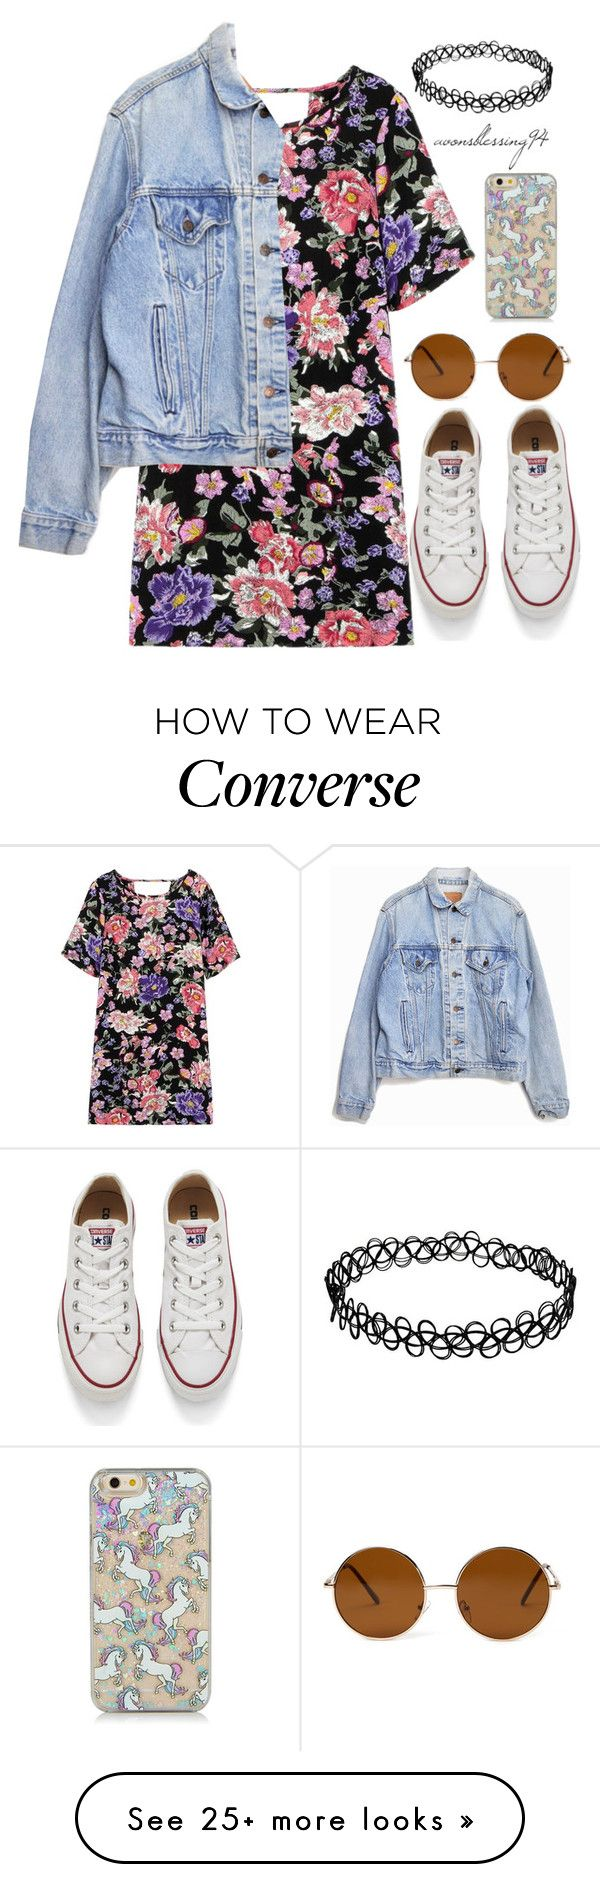 """Vintage"" by avonsblessing94 on Polyvore featuring Converse, Levi's, Forever 21, vintage, women's clothing, women, female, woman, misses and juniors"